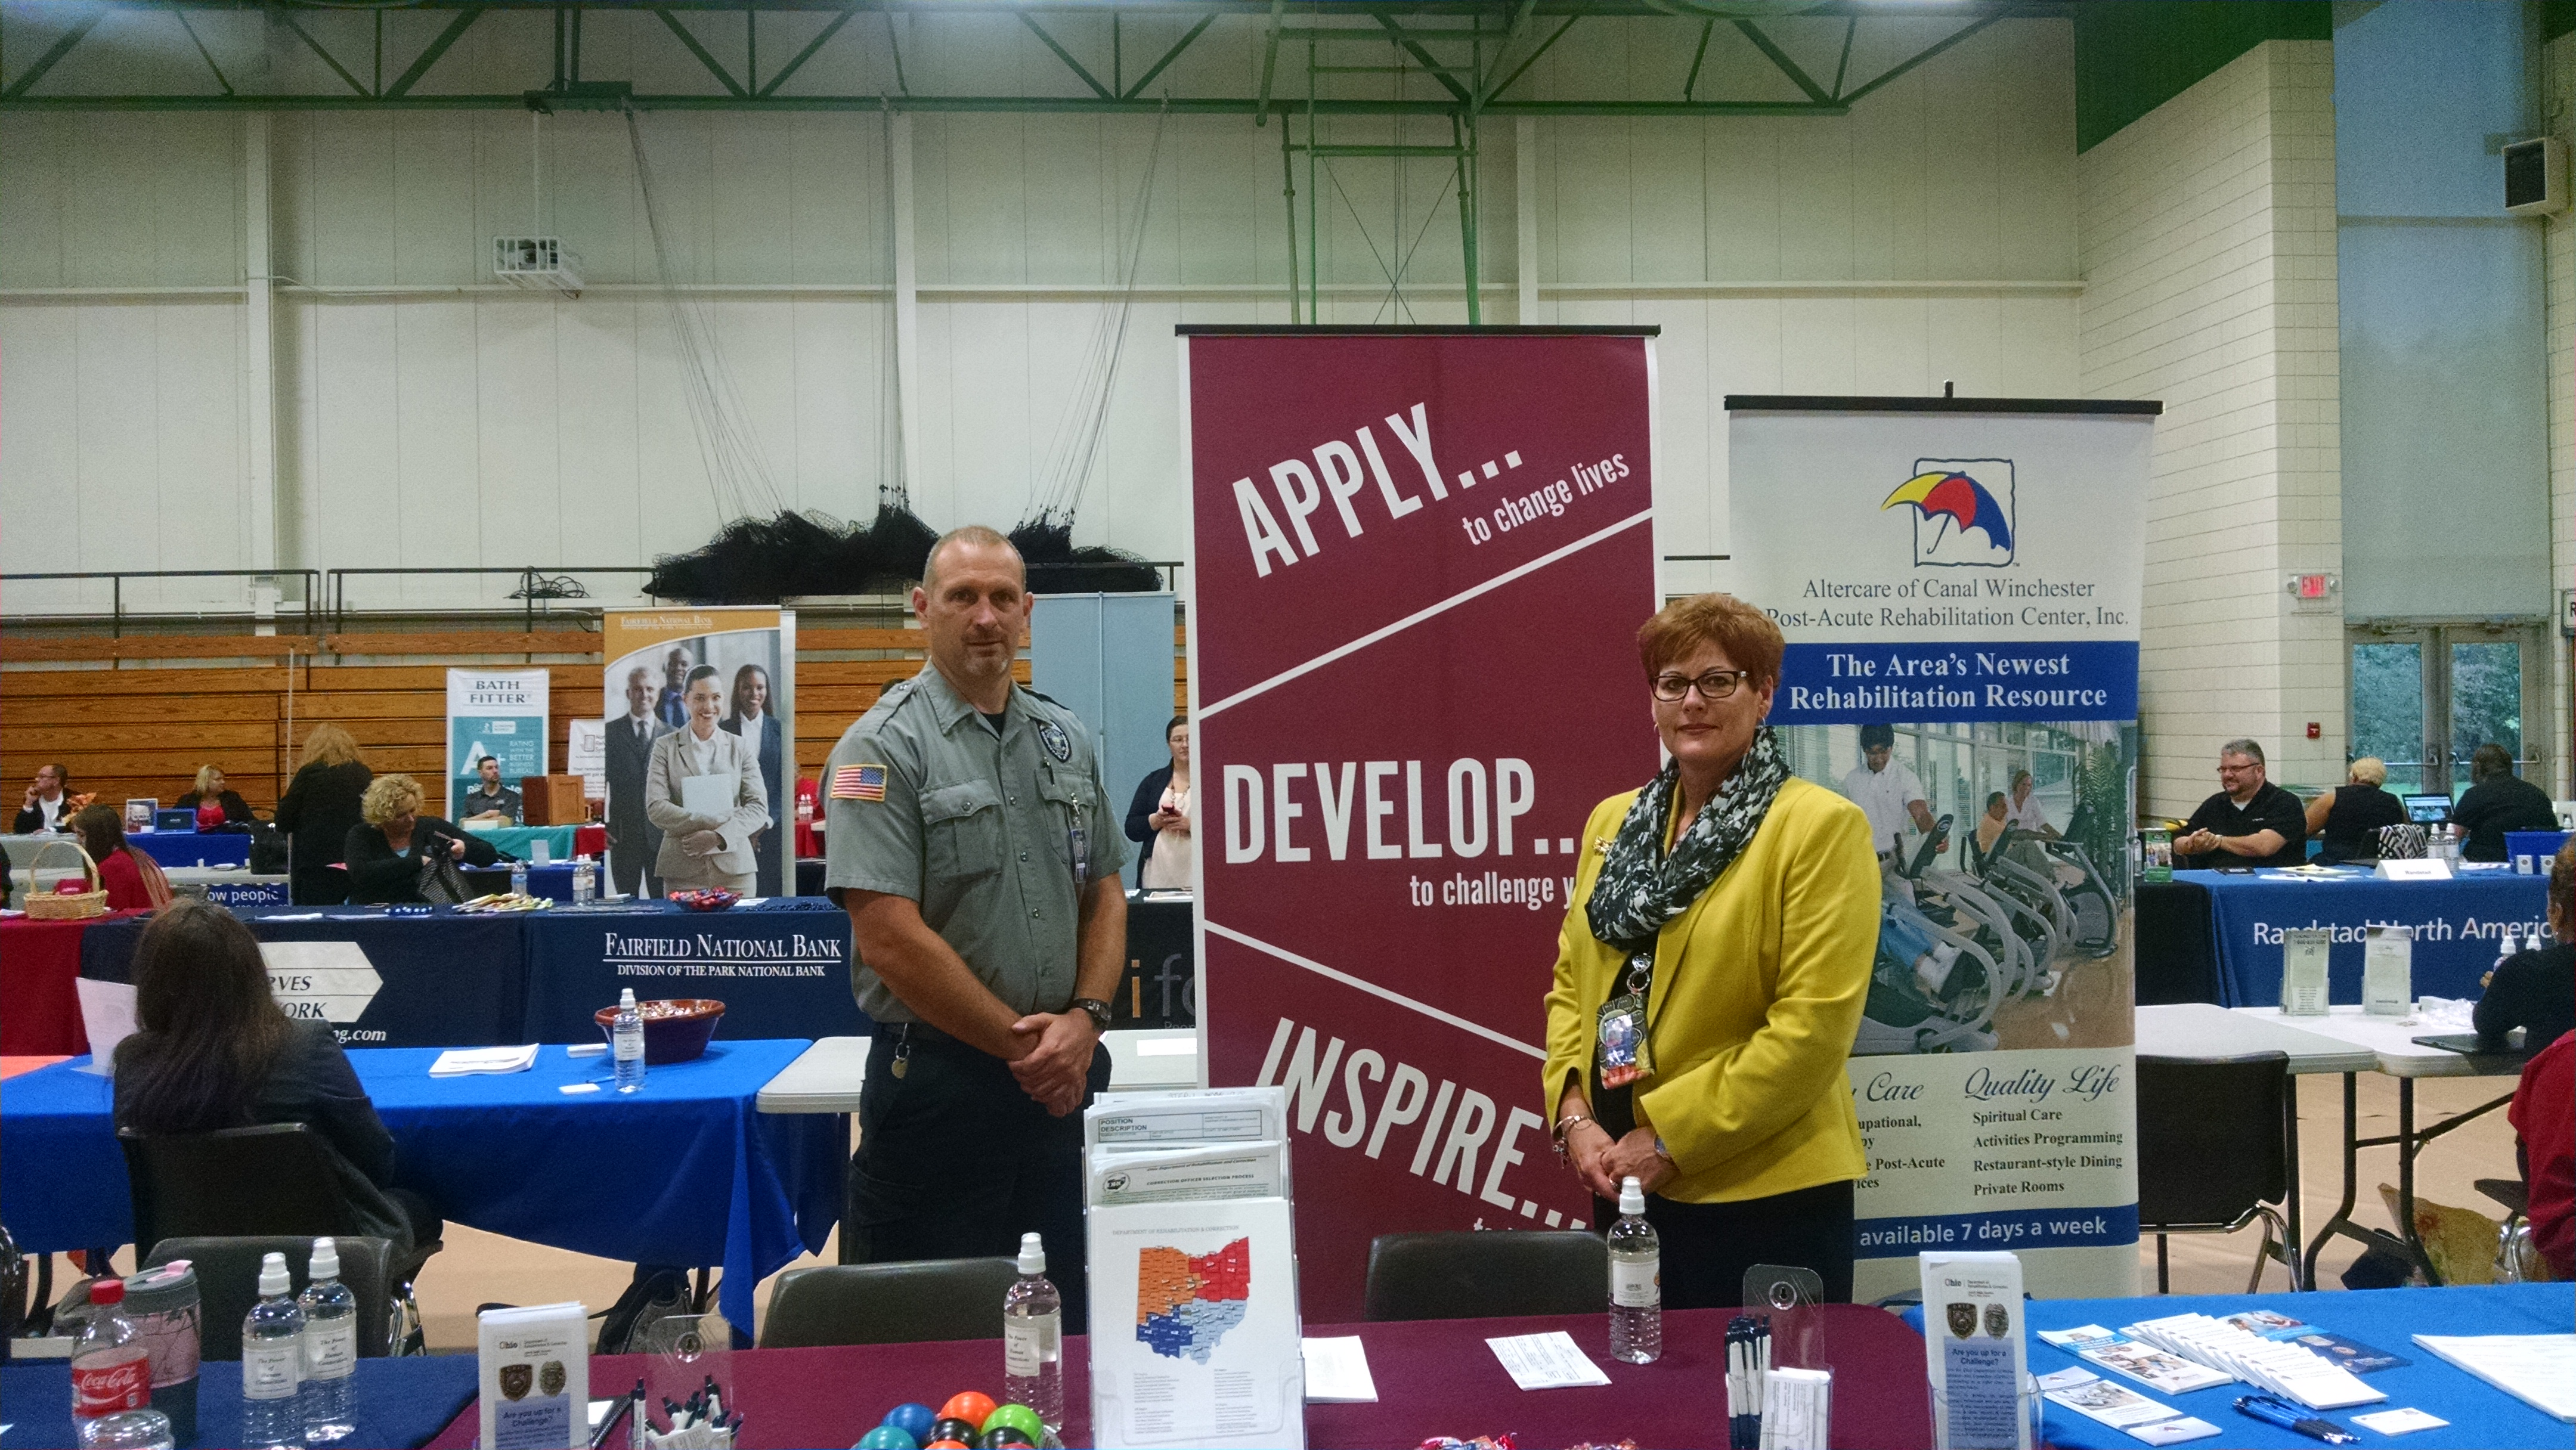 Career Fair at the Ohio University Lancaster Campus